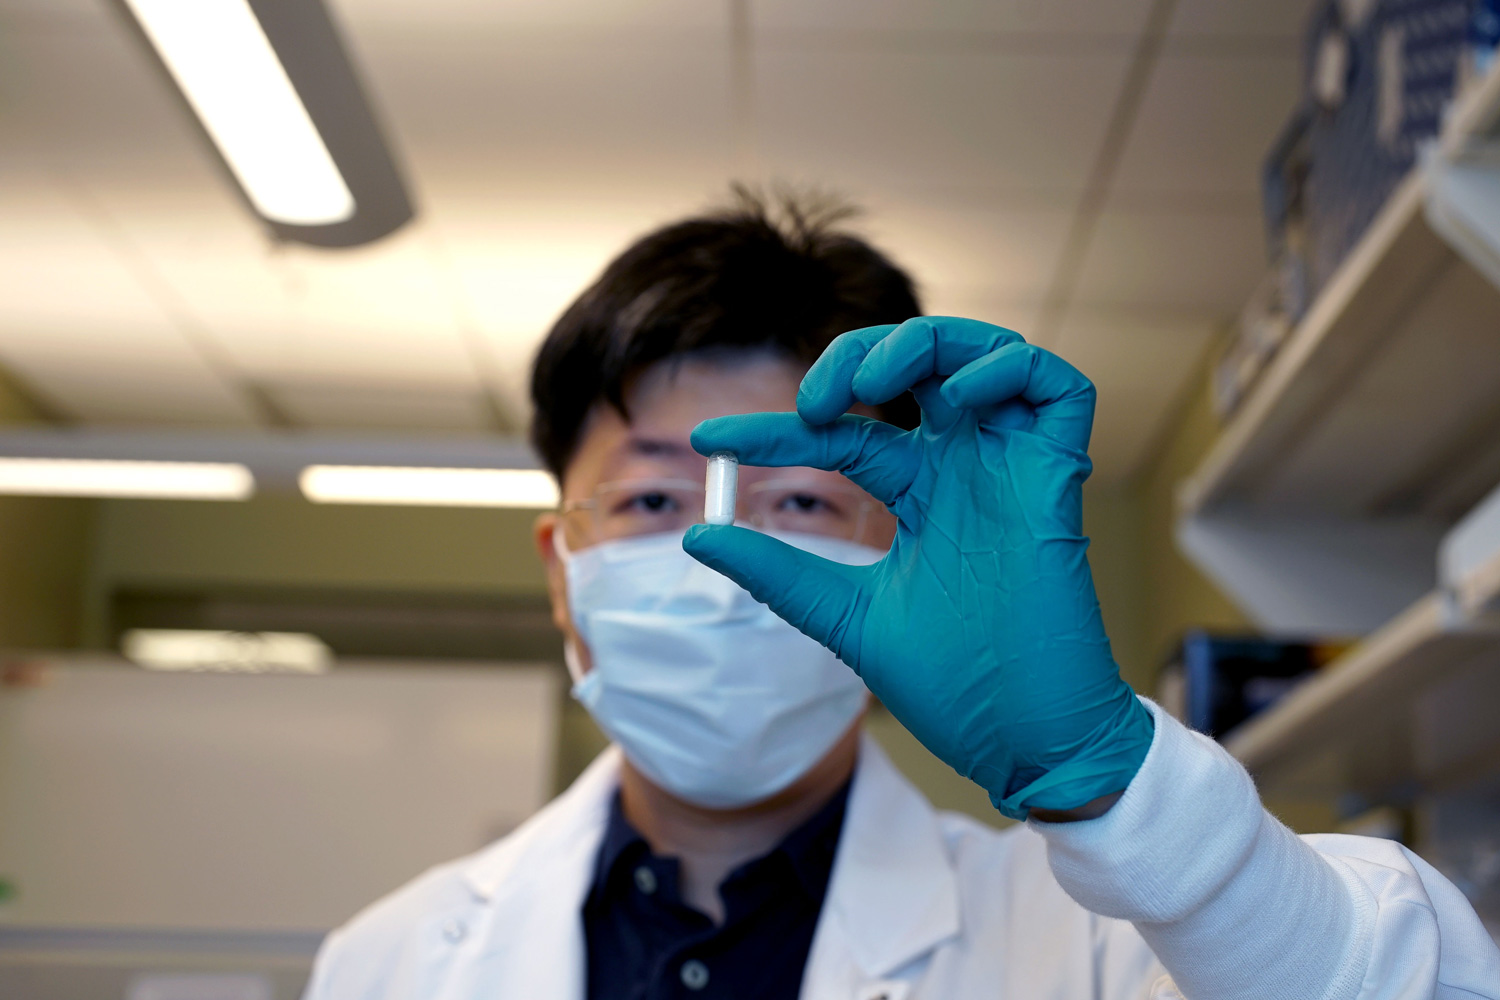 Synthetic coating for the GI tract could deliver drugs or aid in digestion | MIT News